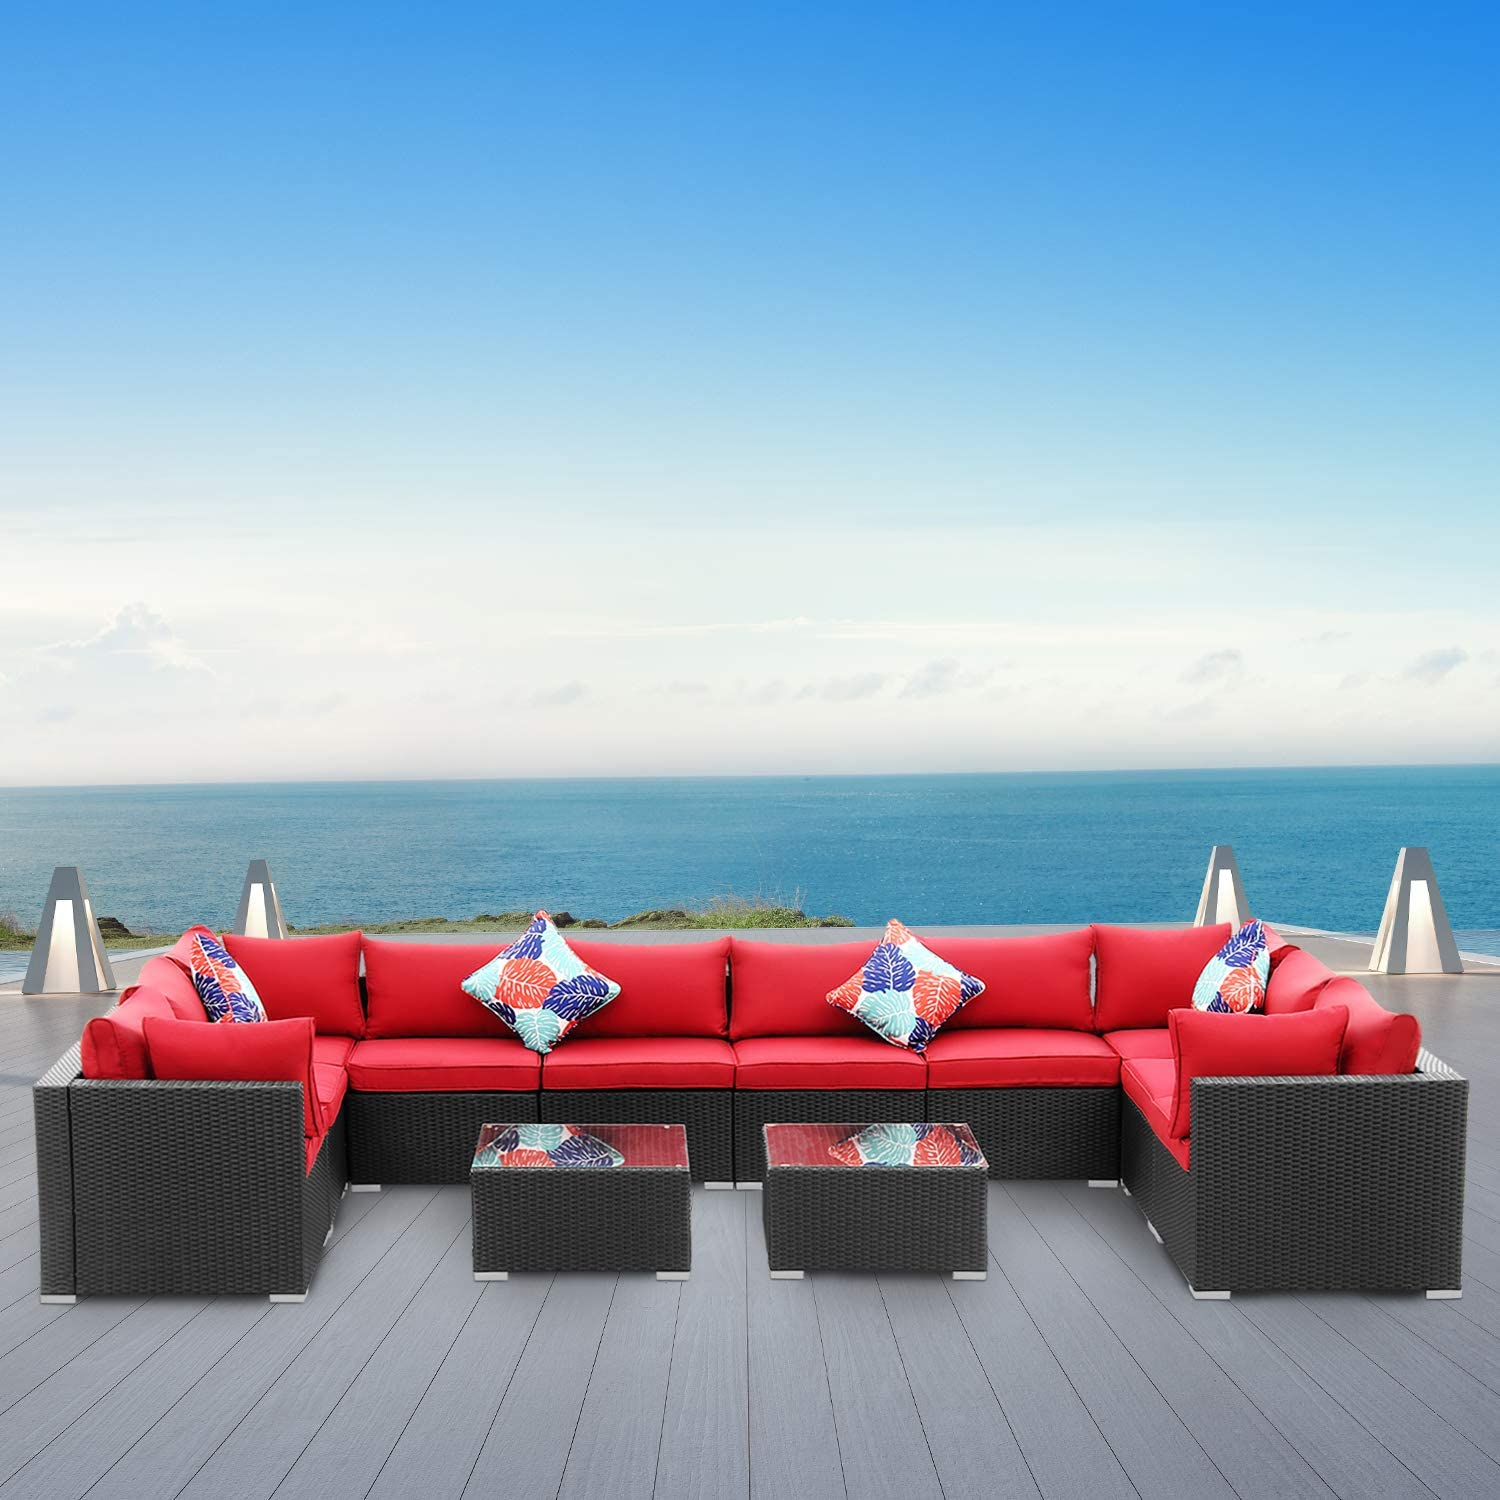 Wonlink 12 Pieces Patio Furniture Selling Furnitu Set Inexpensive Outdoor Sectional